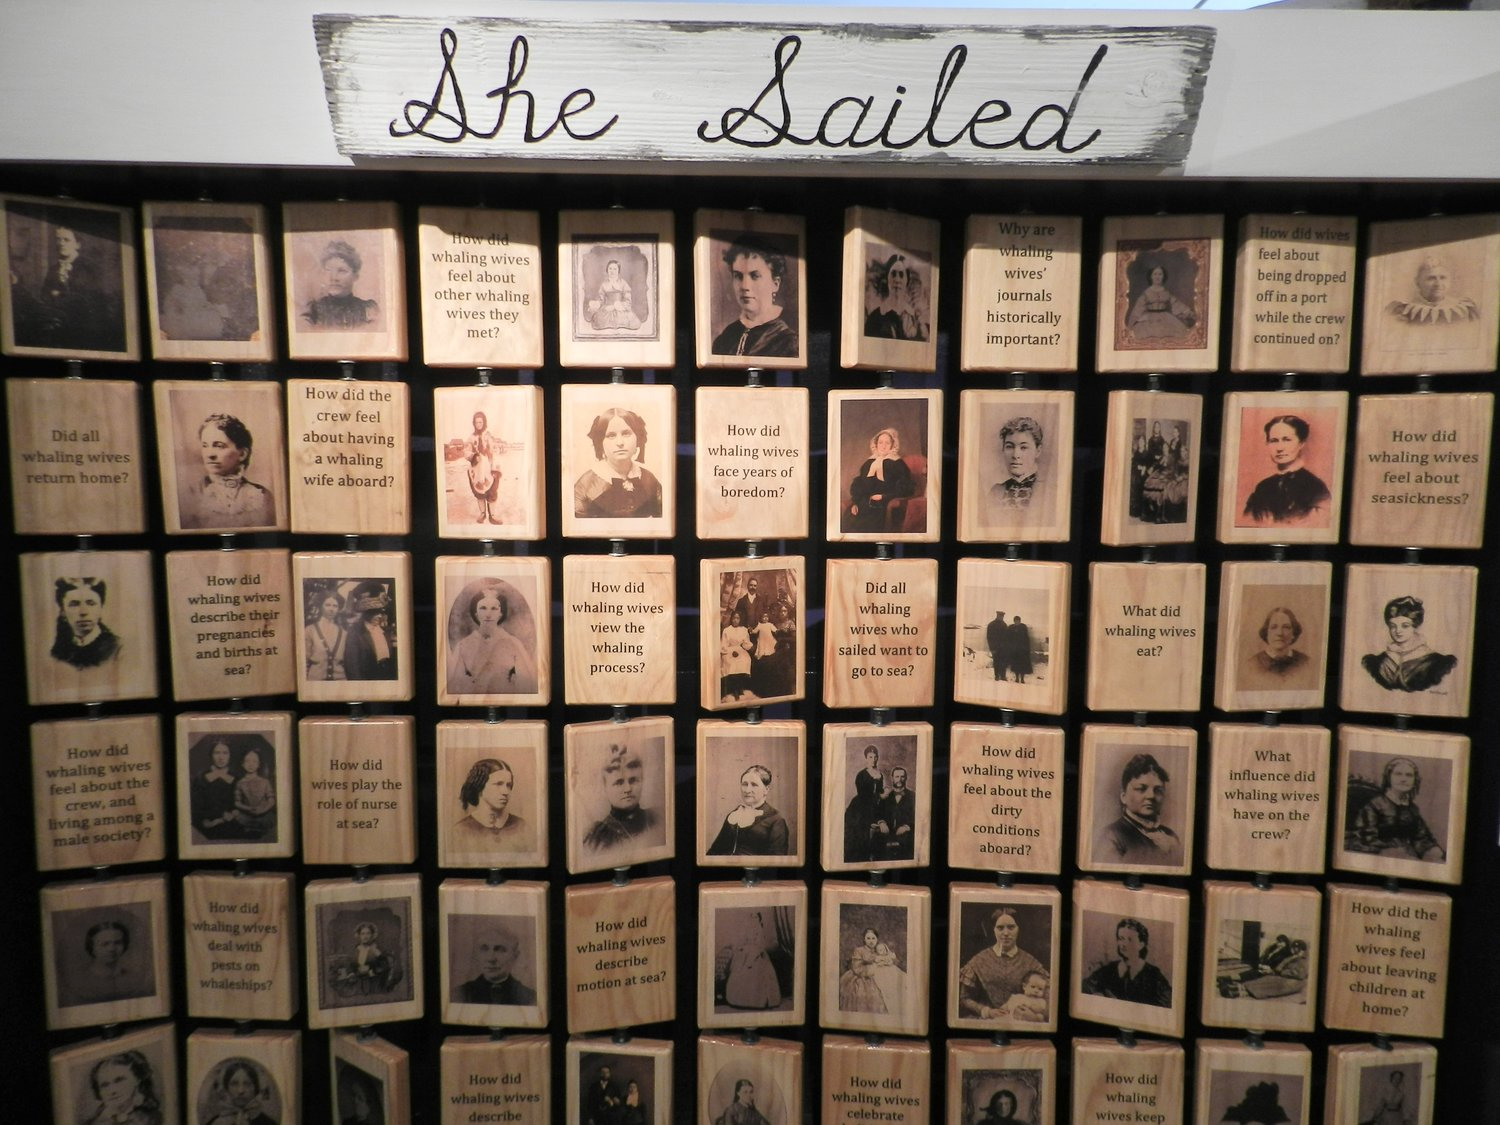 Interactive spin panels give observers insight into what life was like for women while whaling.